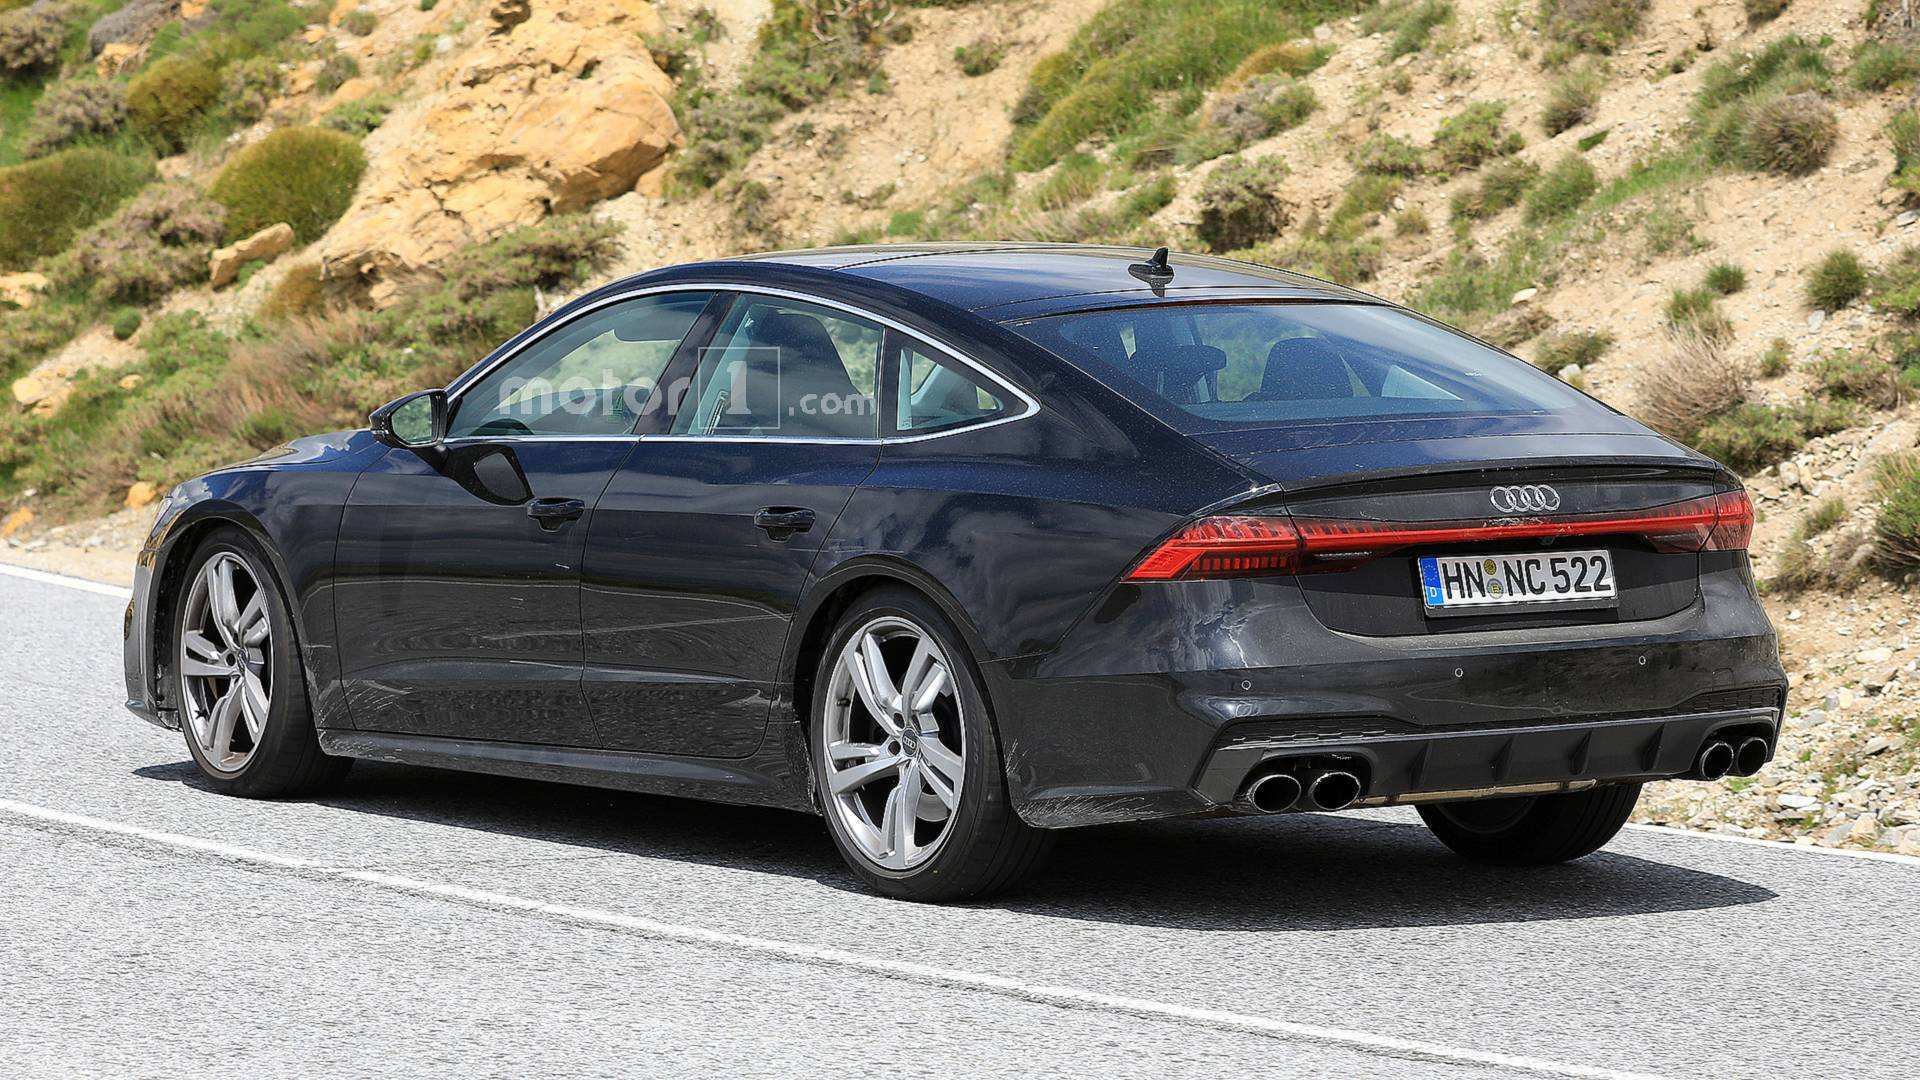 53 Concept of Audi S7 2020 Images with Audi S7 2020